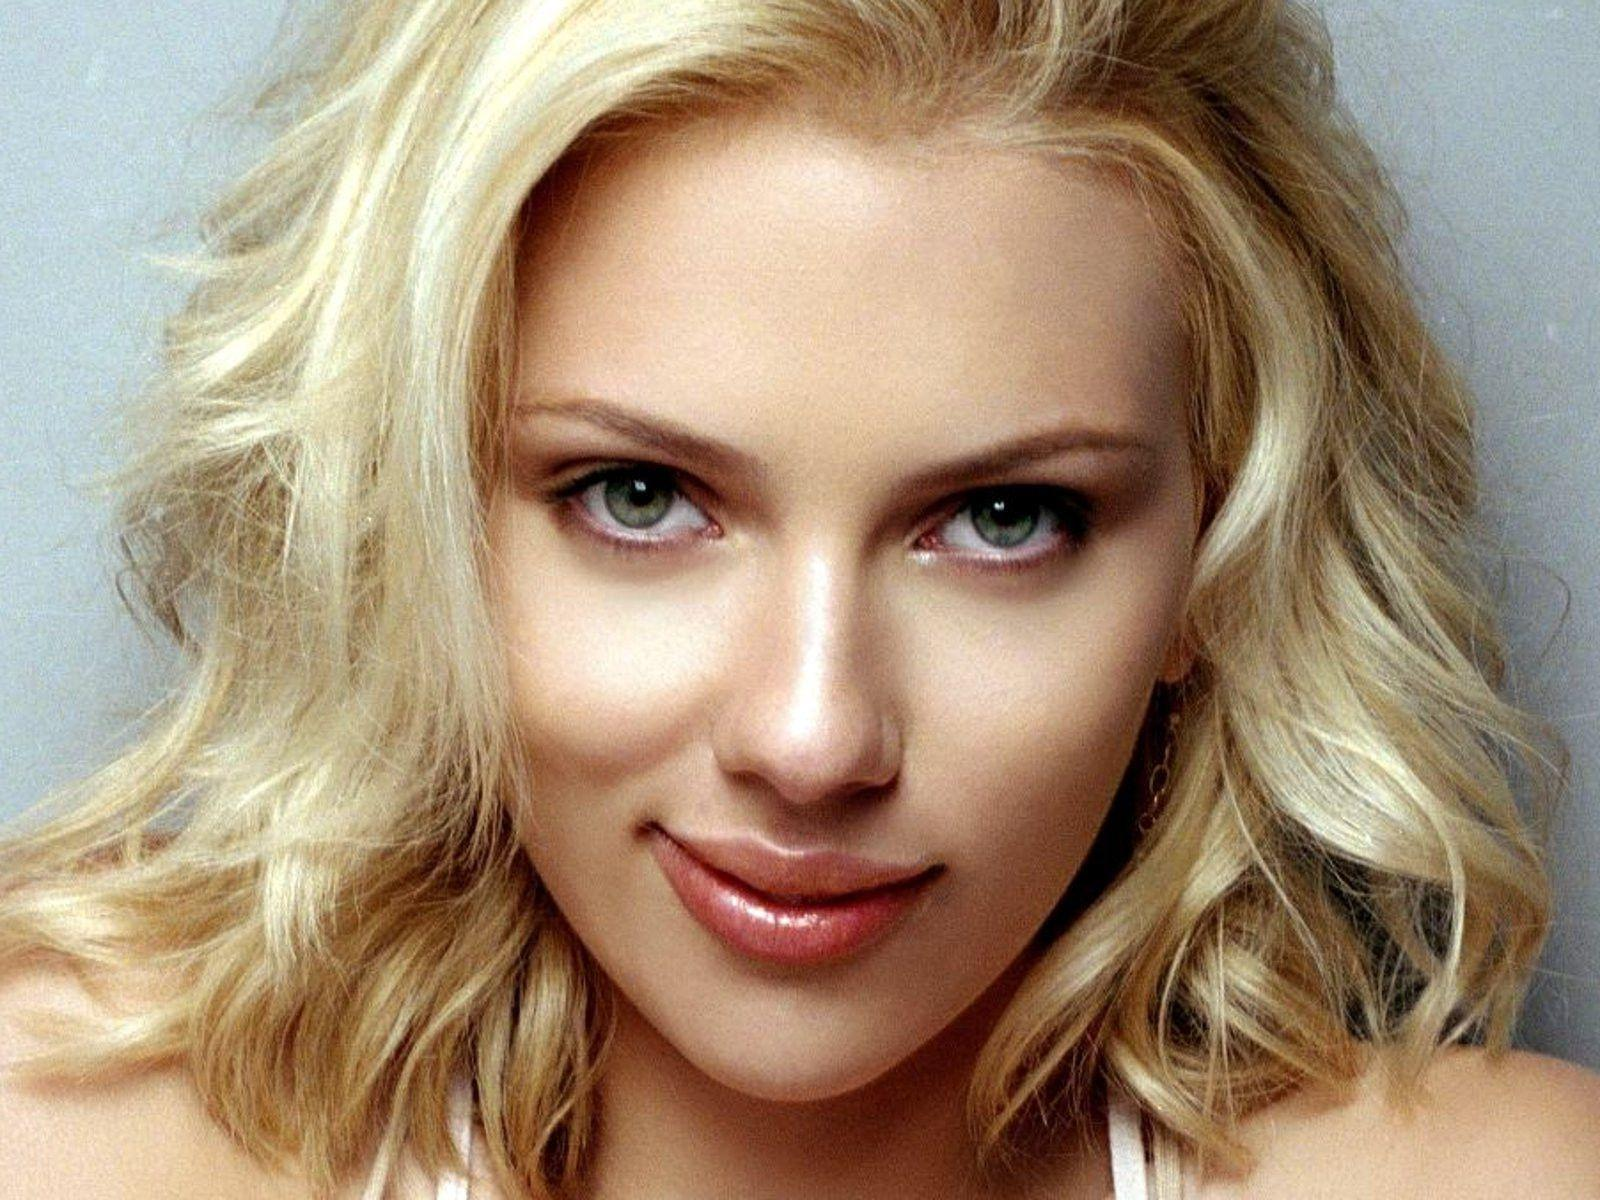 Scarlett Johansson Wallpapers - Wallpaper Cave